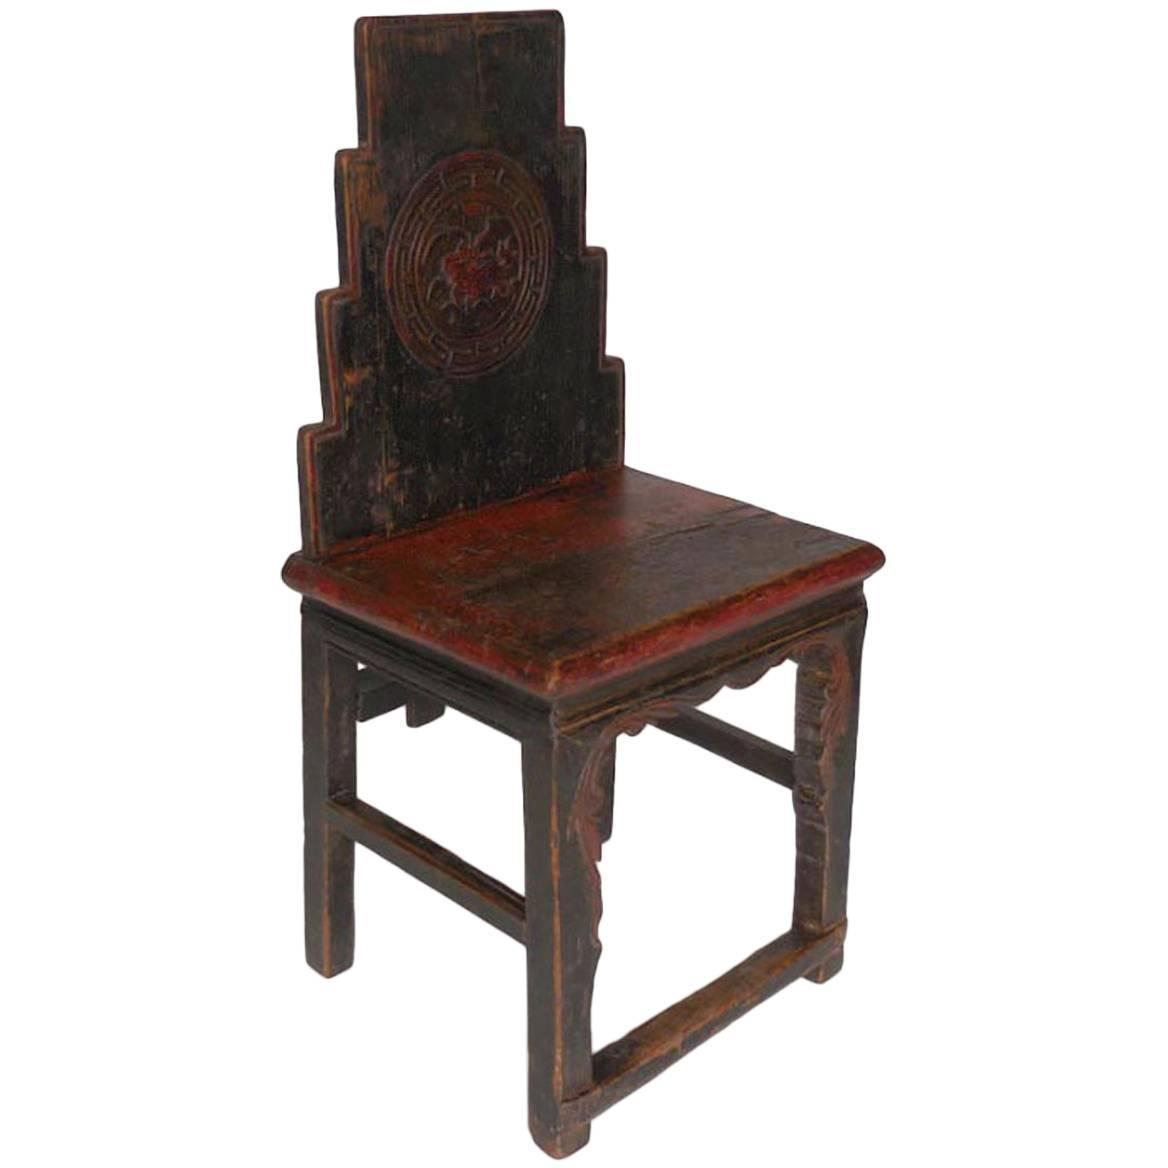 Chinese Chair 19th Century Chinese Chair For Sale At 1stdibs